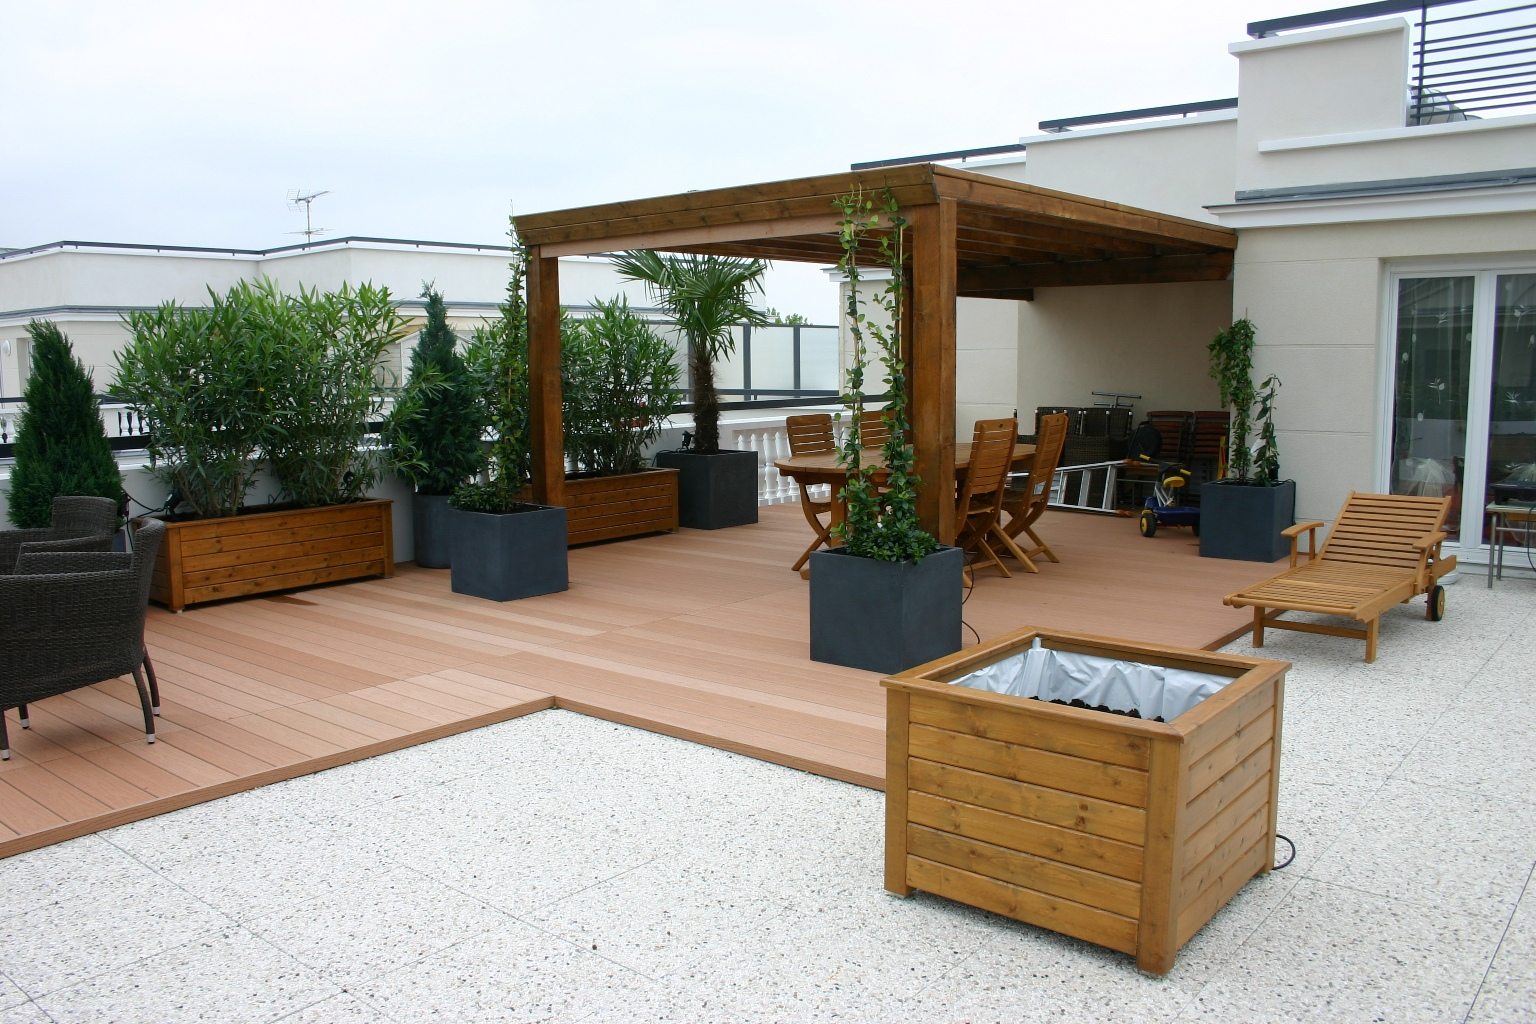 Comment am nager sa terrasse for Terrasse appartement amenagement